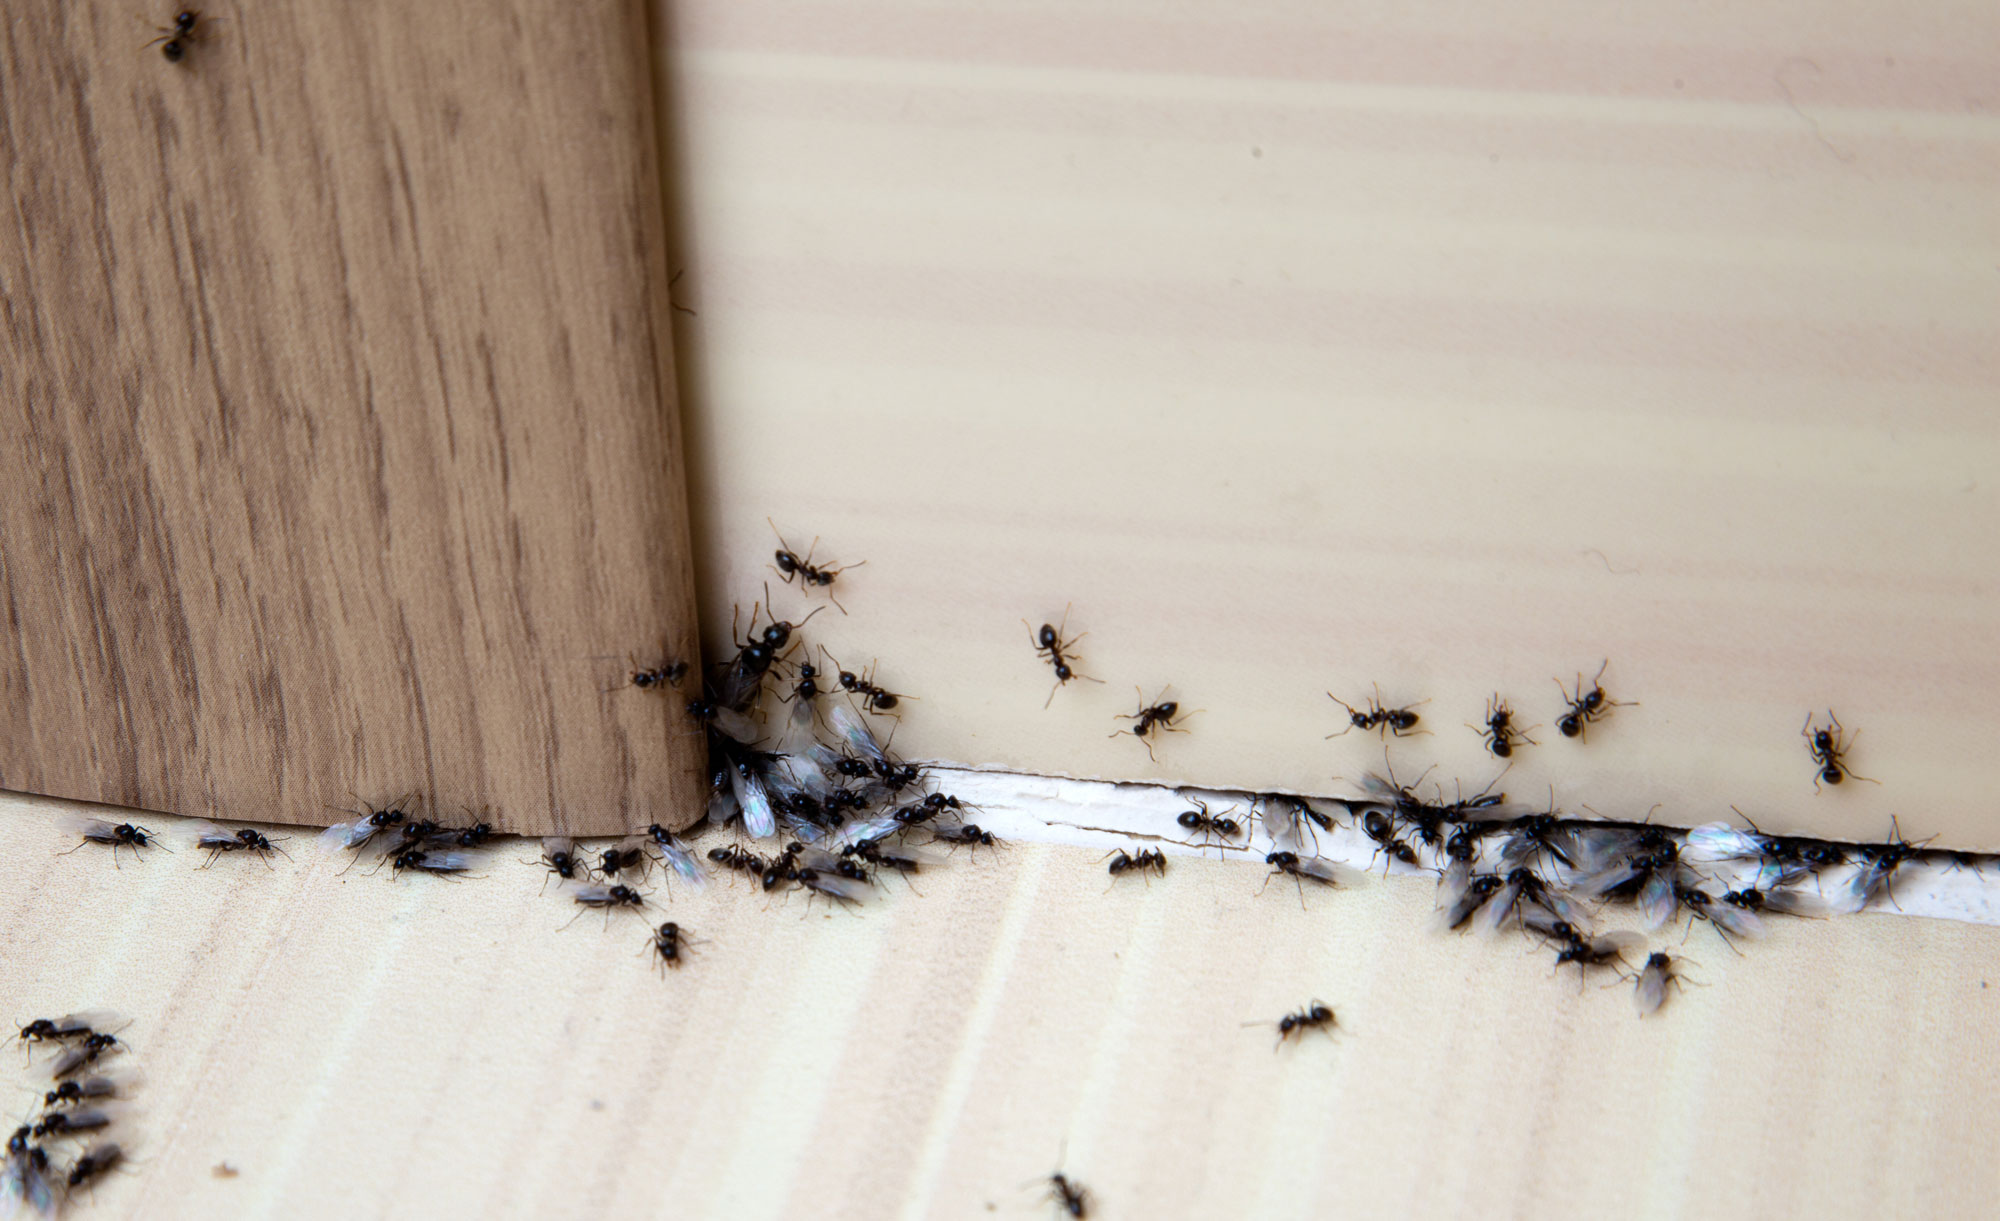 ants coming into house from under door